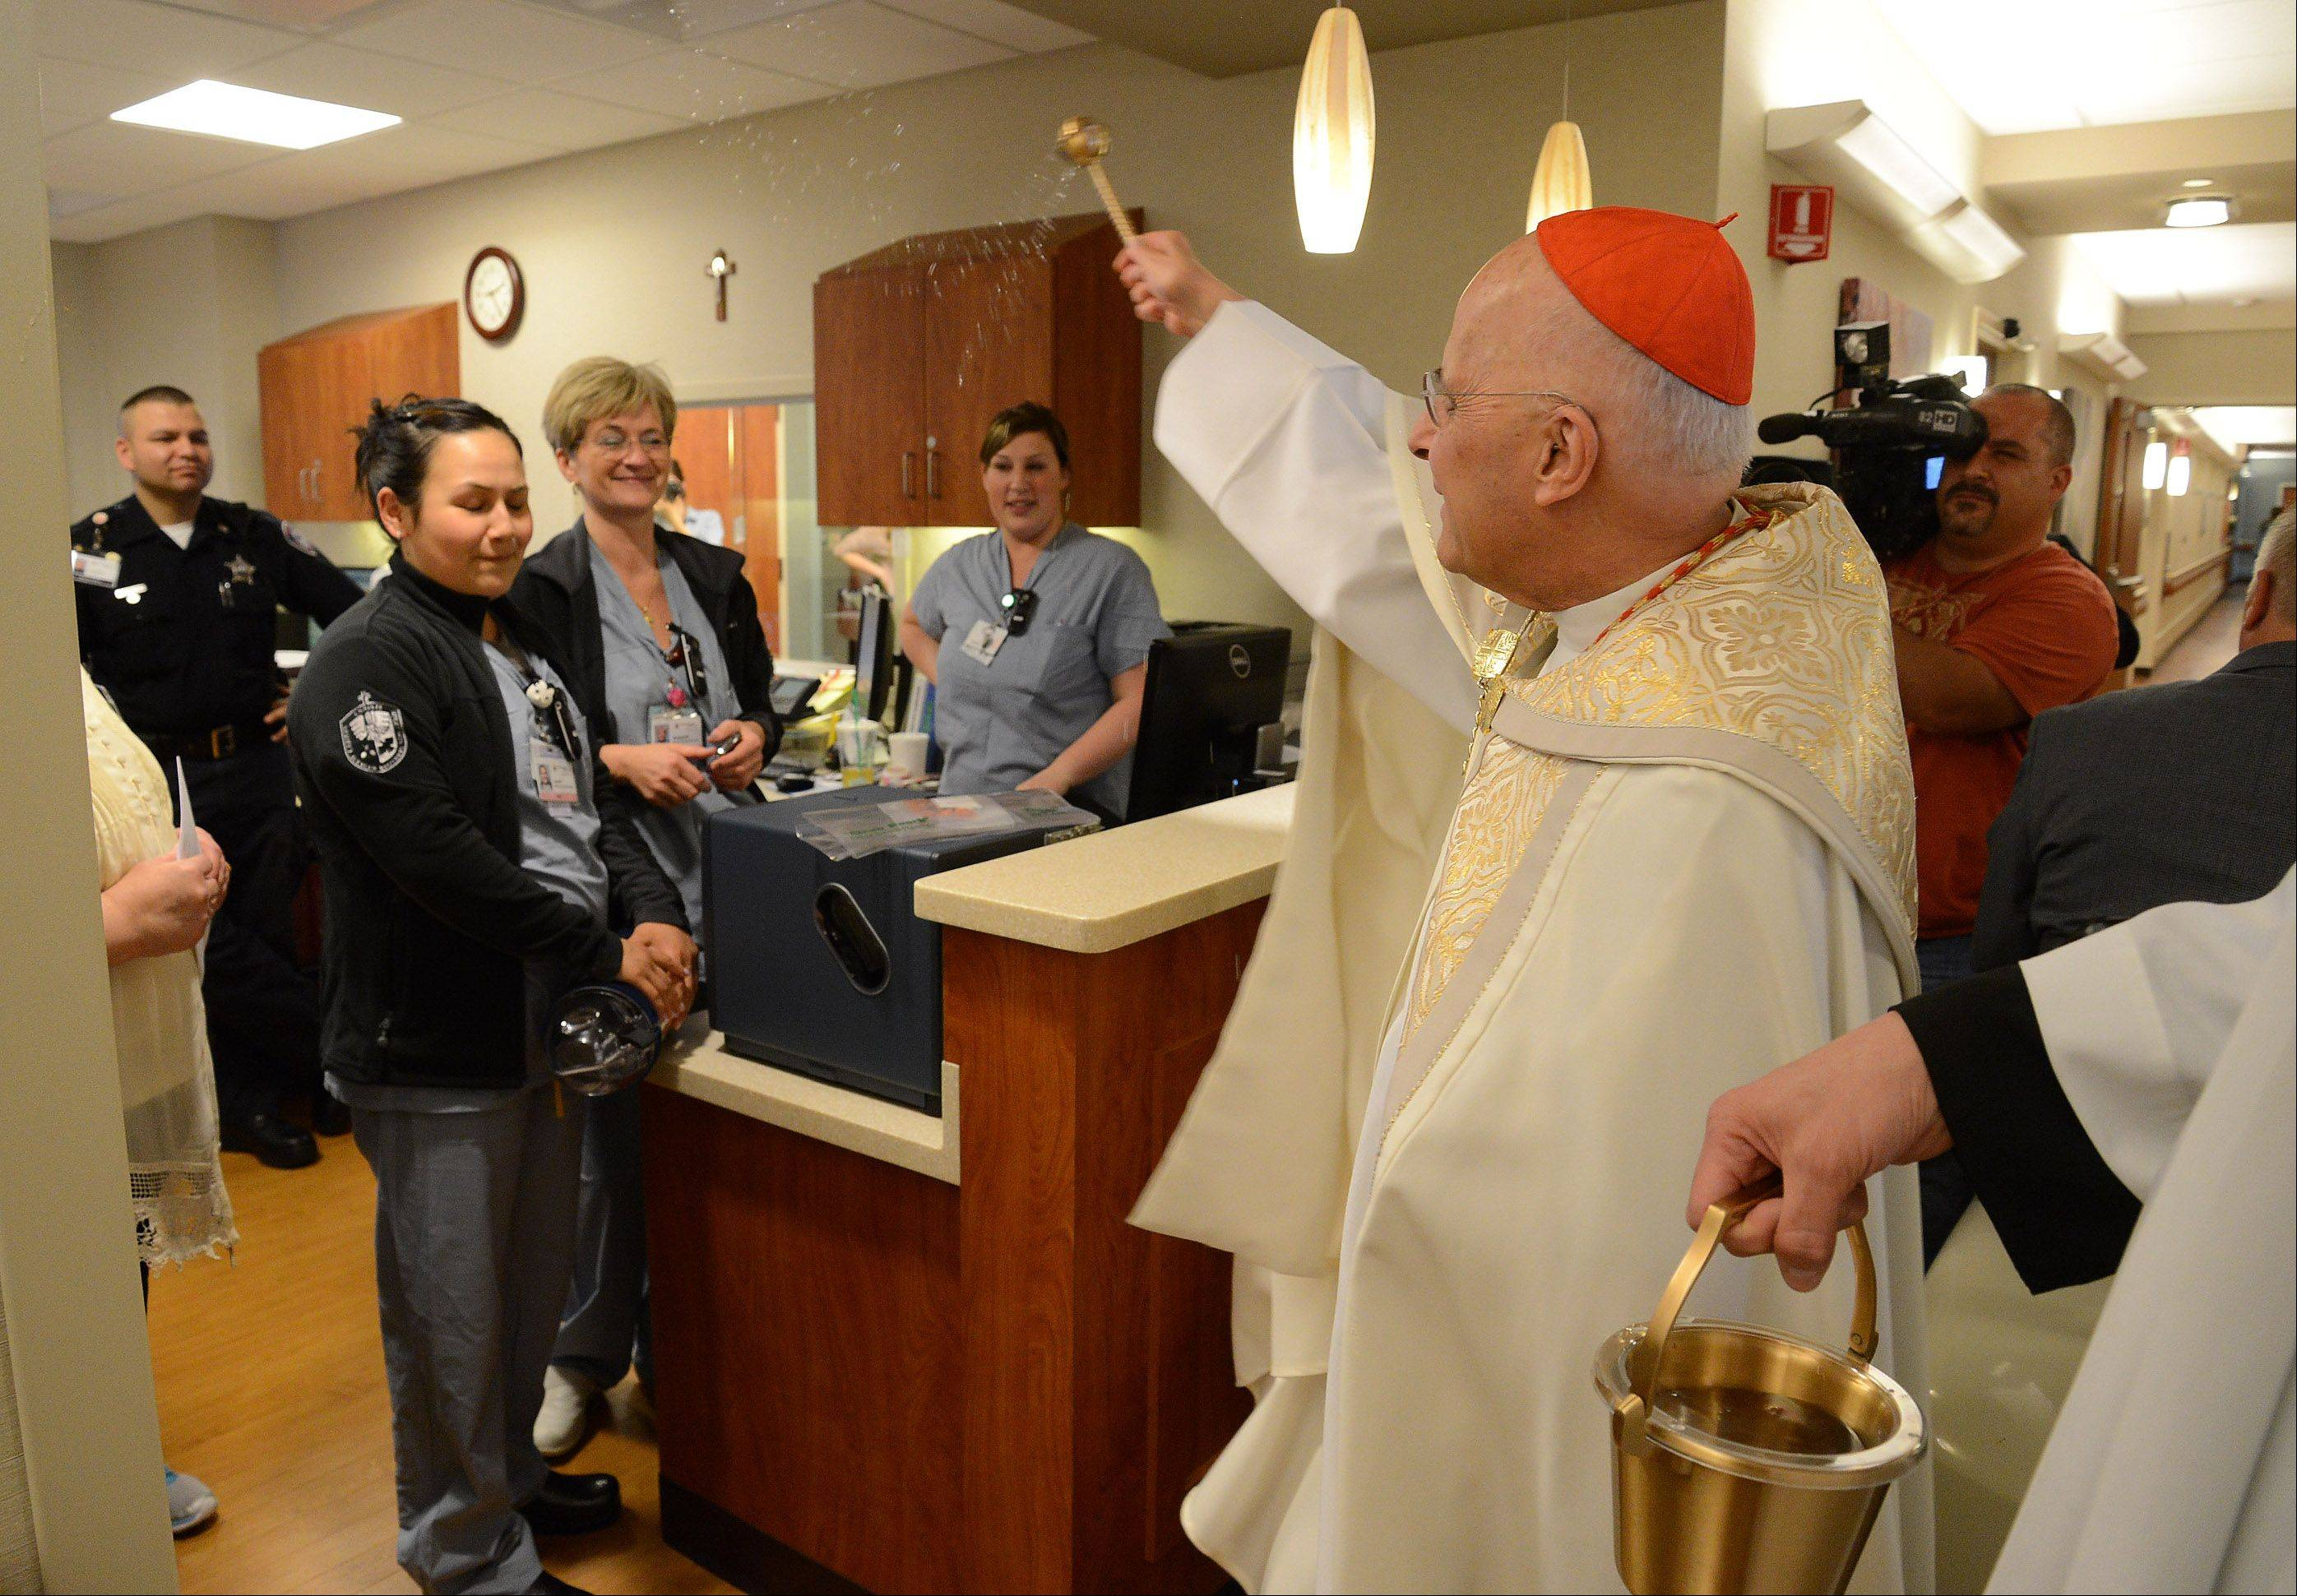 Francis Cardinal George blesses the staff, patients and families of the new Alexian Brothers Women and Children's Hospital in Hoffman Estates.